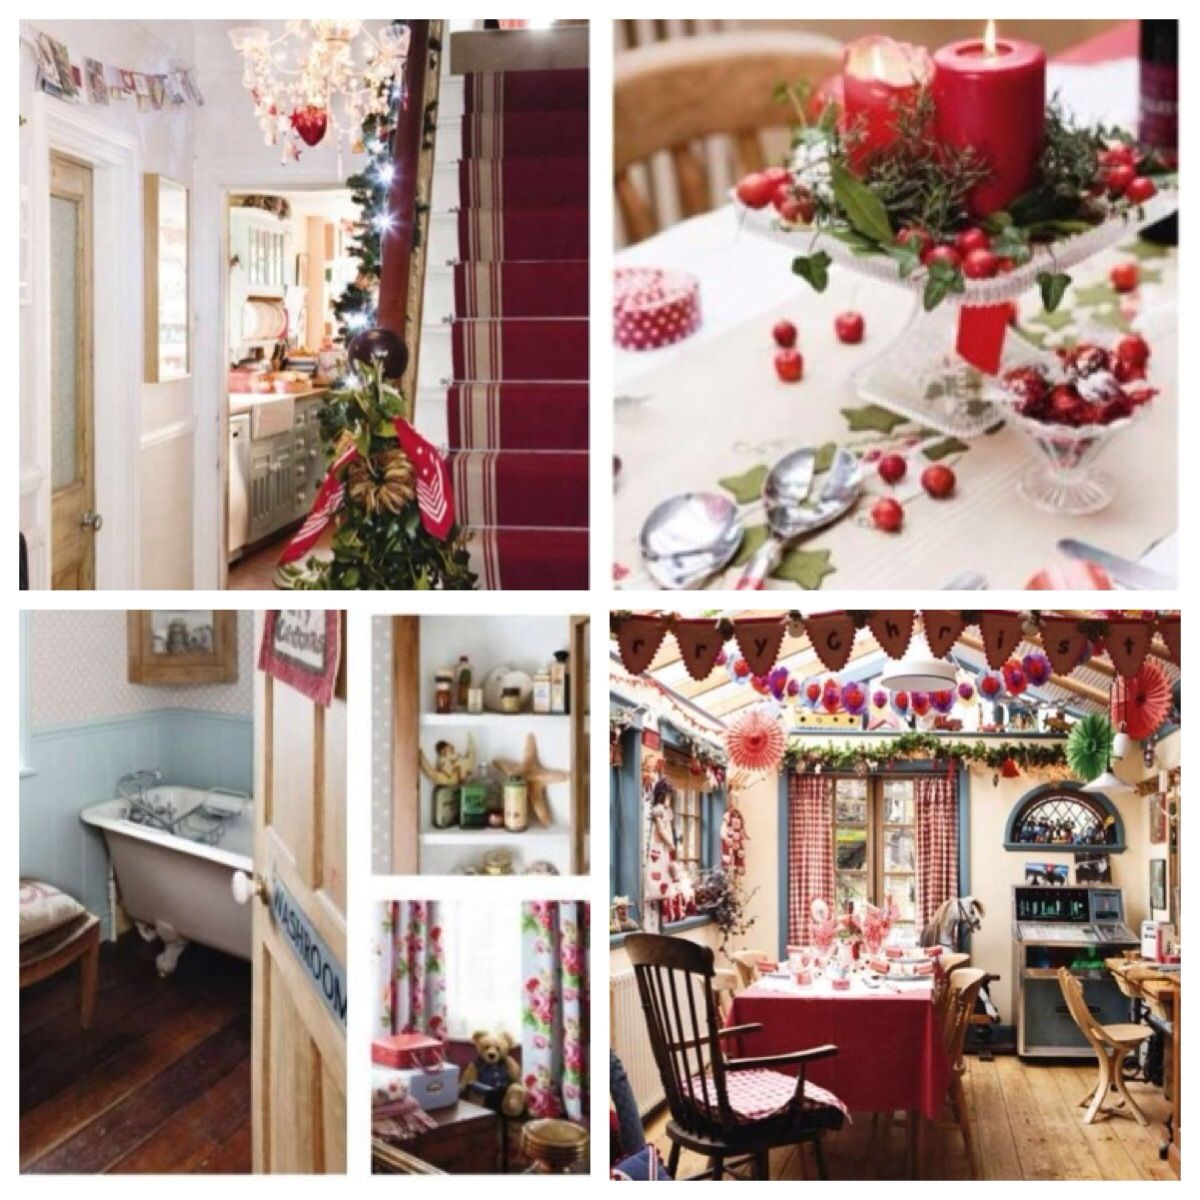 Christmas Decorations Uk: Country Chic Christmas Decorating